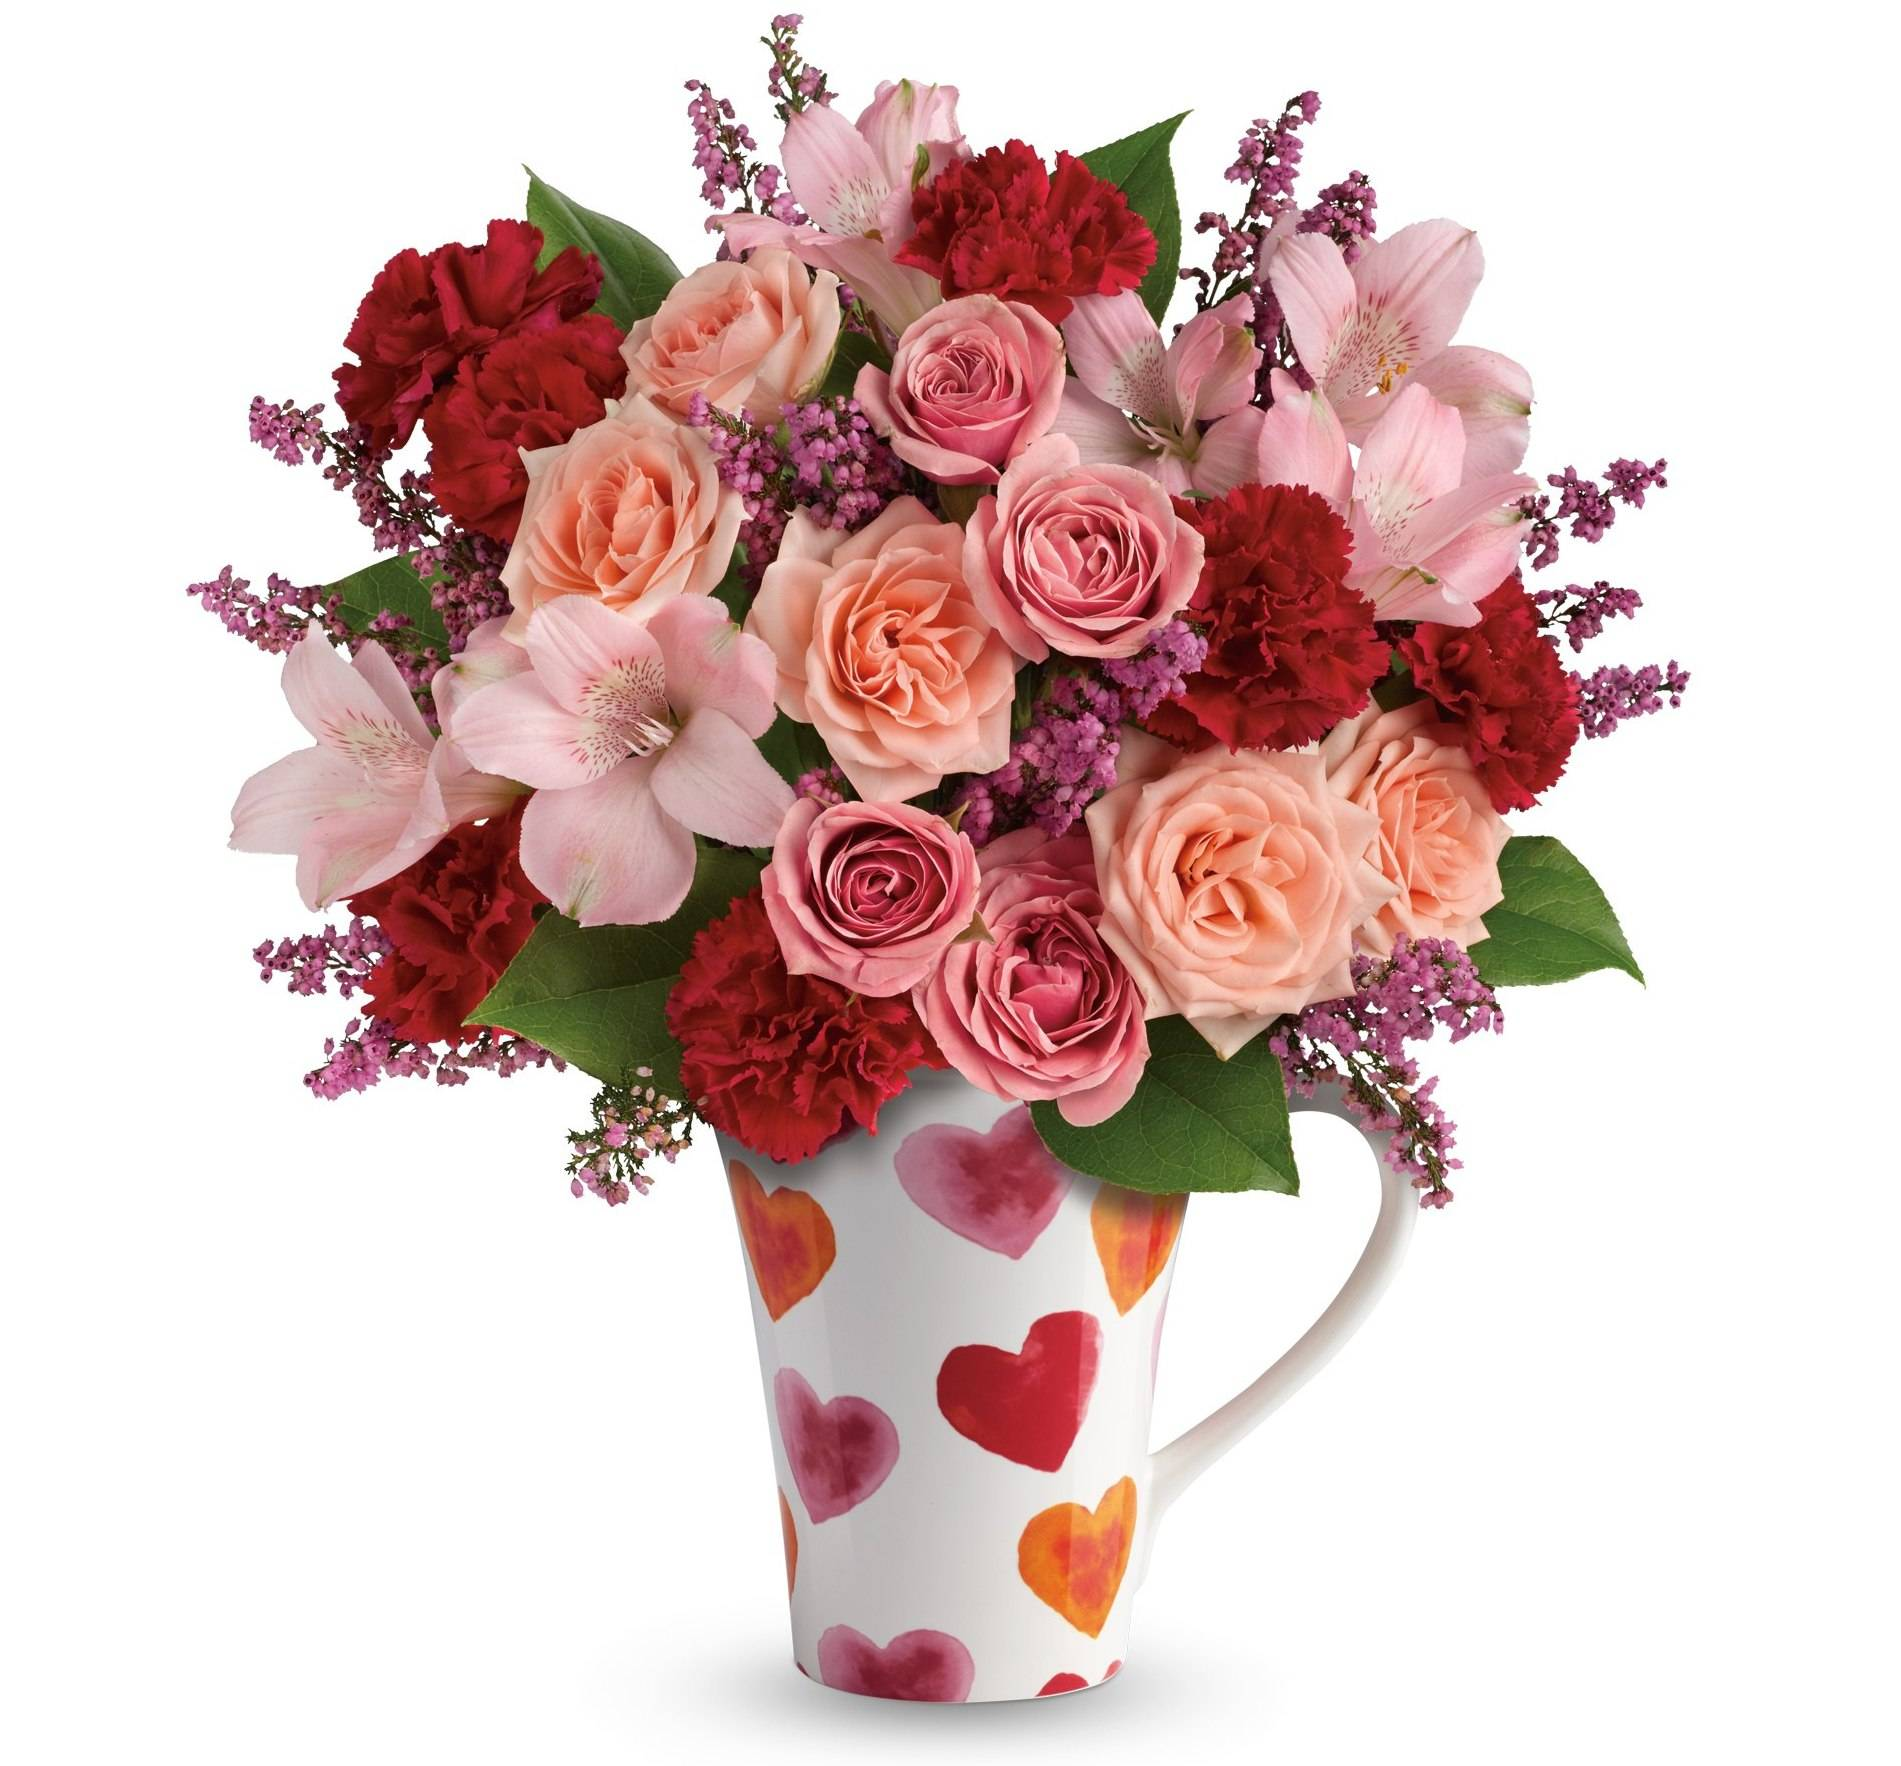 Give the gift of spring with telefloras luxury bouquets telefloras lovely hearts bouquet teleflora lovely hearts bouquet izmirmasajfo